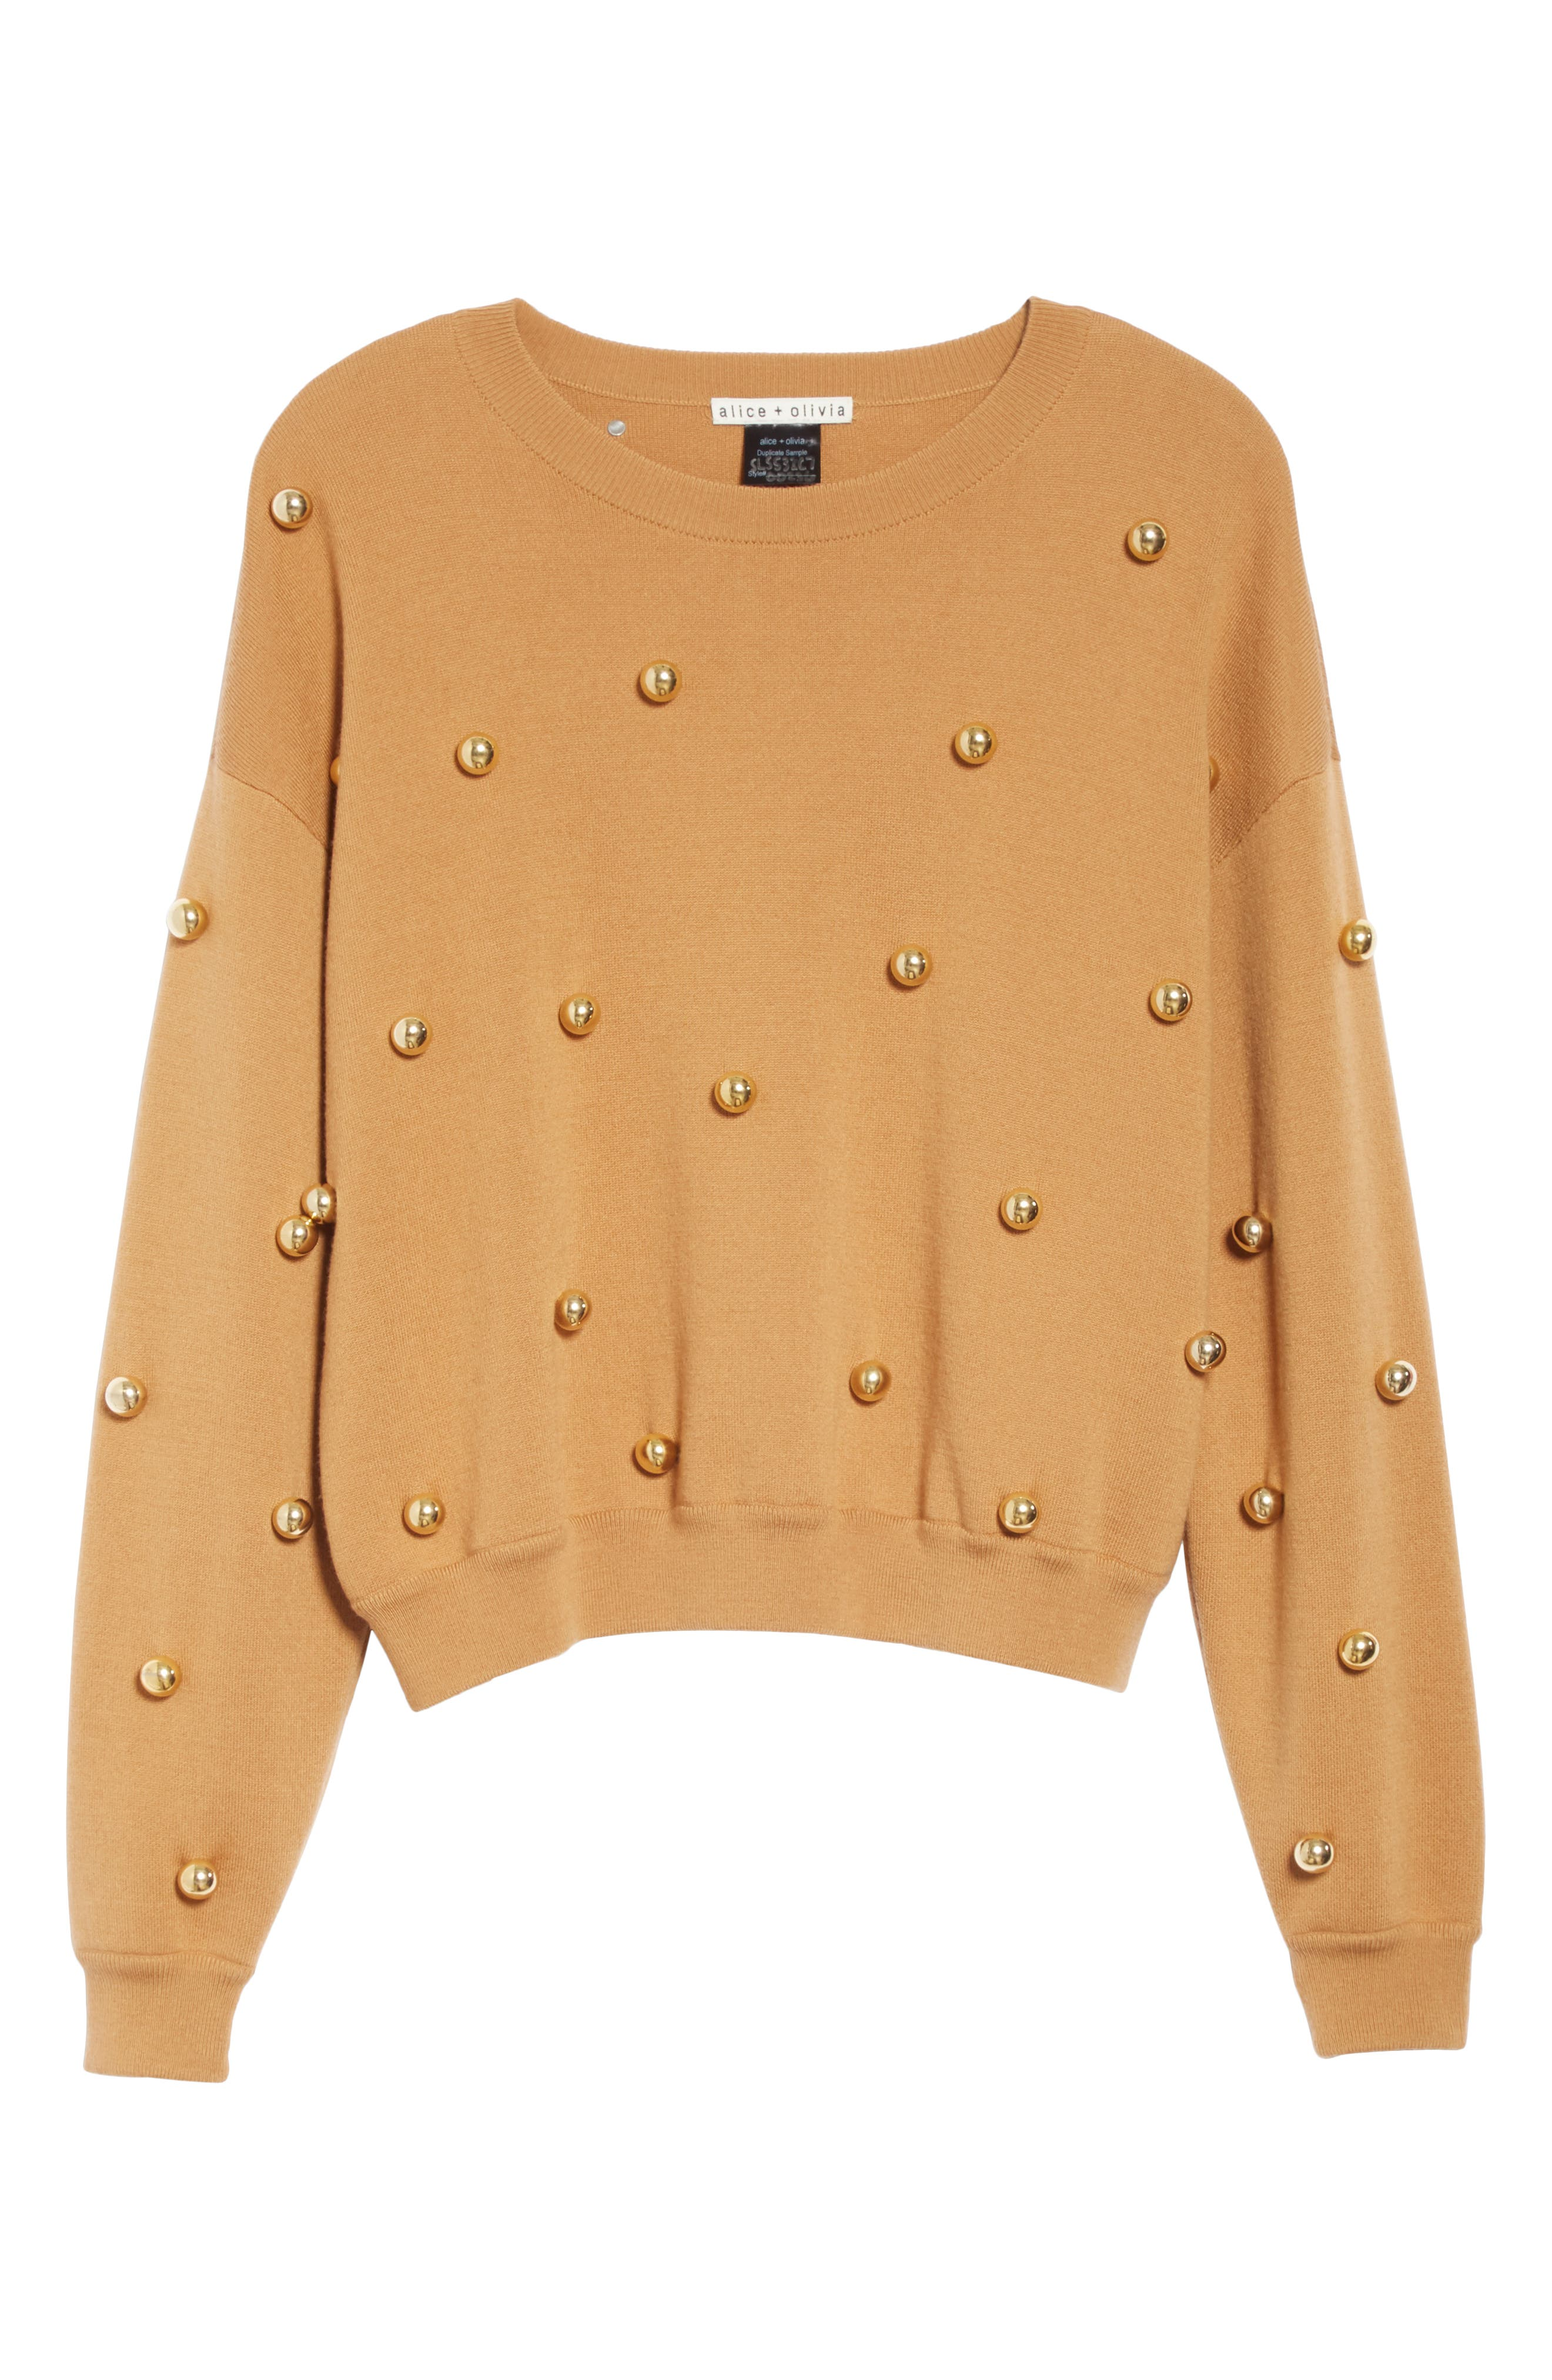 ALICE + OLIVIA, Gleeson Metal Ball Detail Wool Blend Sweater, Alternate thumbnail 6, color, 200